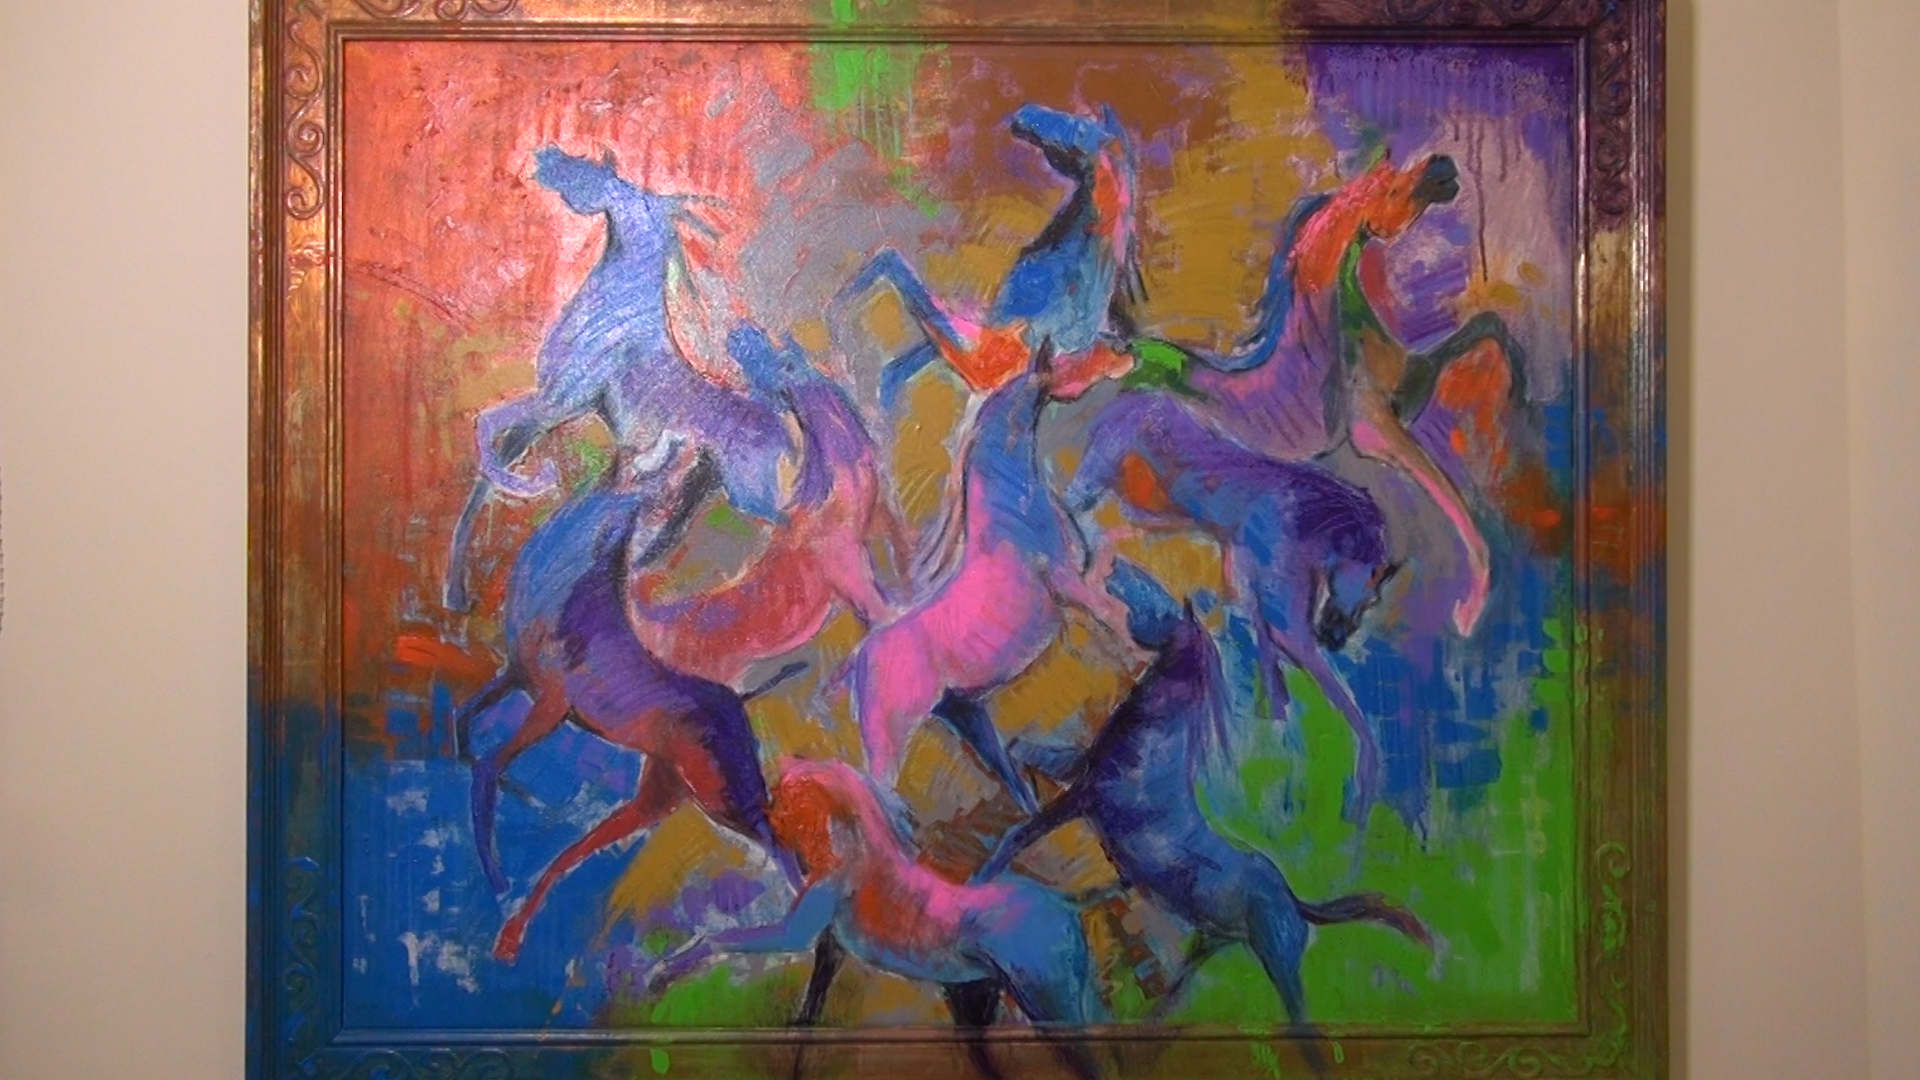 Ahmad Alkarkhi has started painting with a whole new color palette since he came to the U.S. These colorful horses represent refugees who come from all over and work and live together.